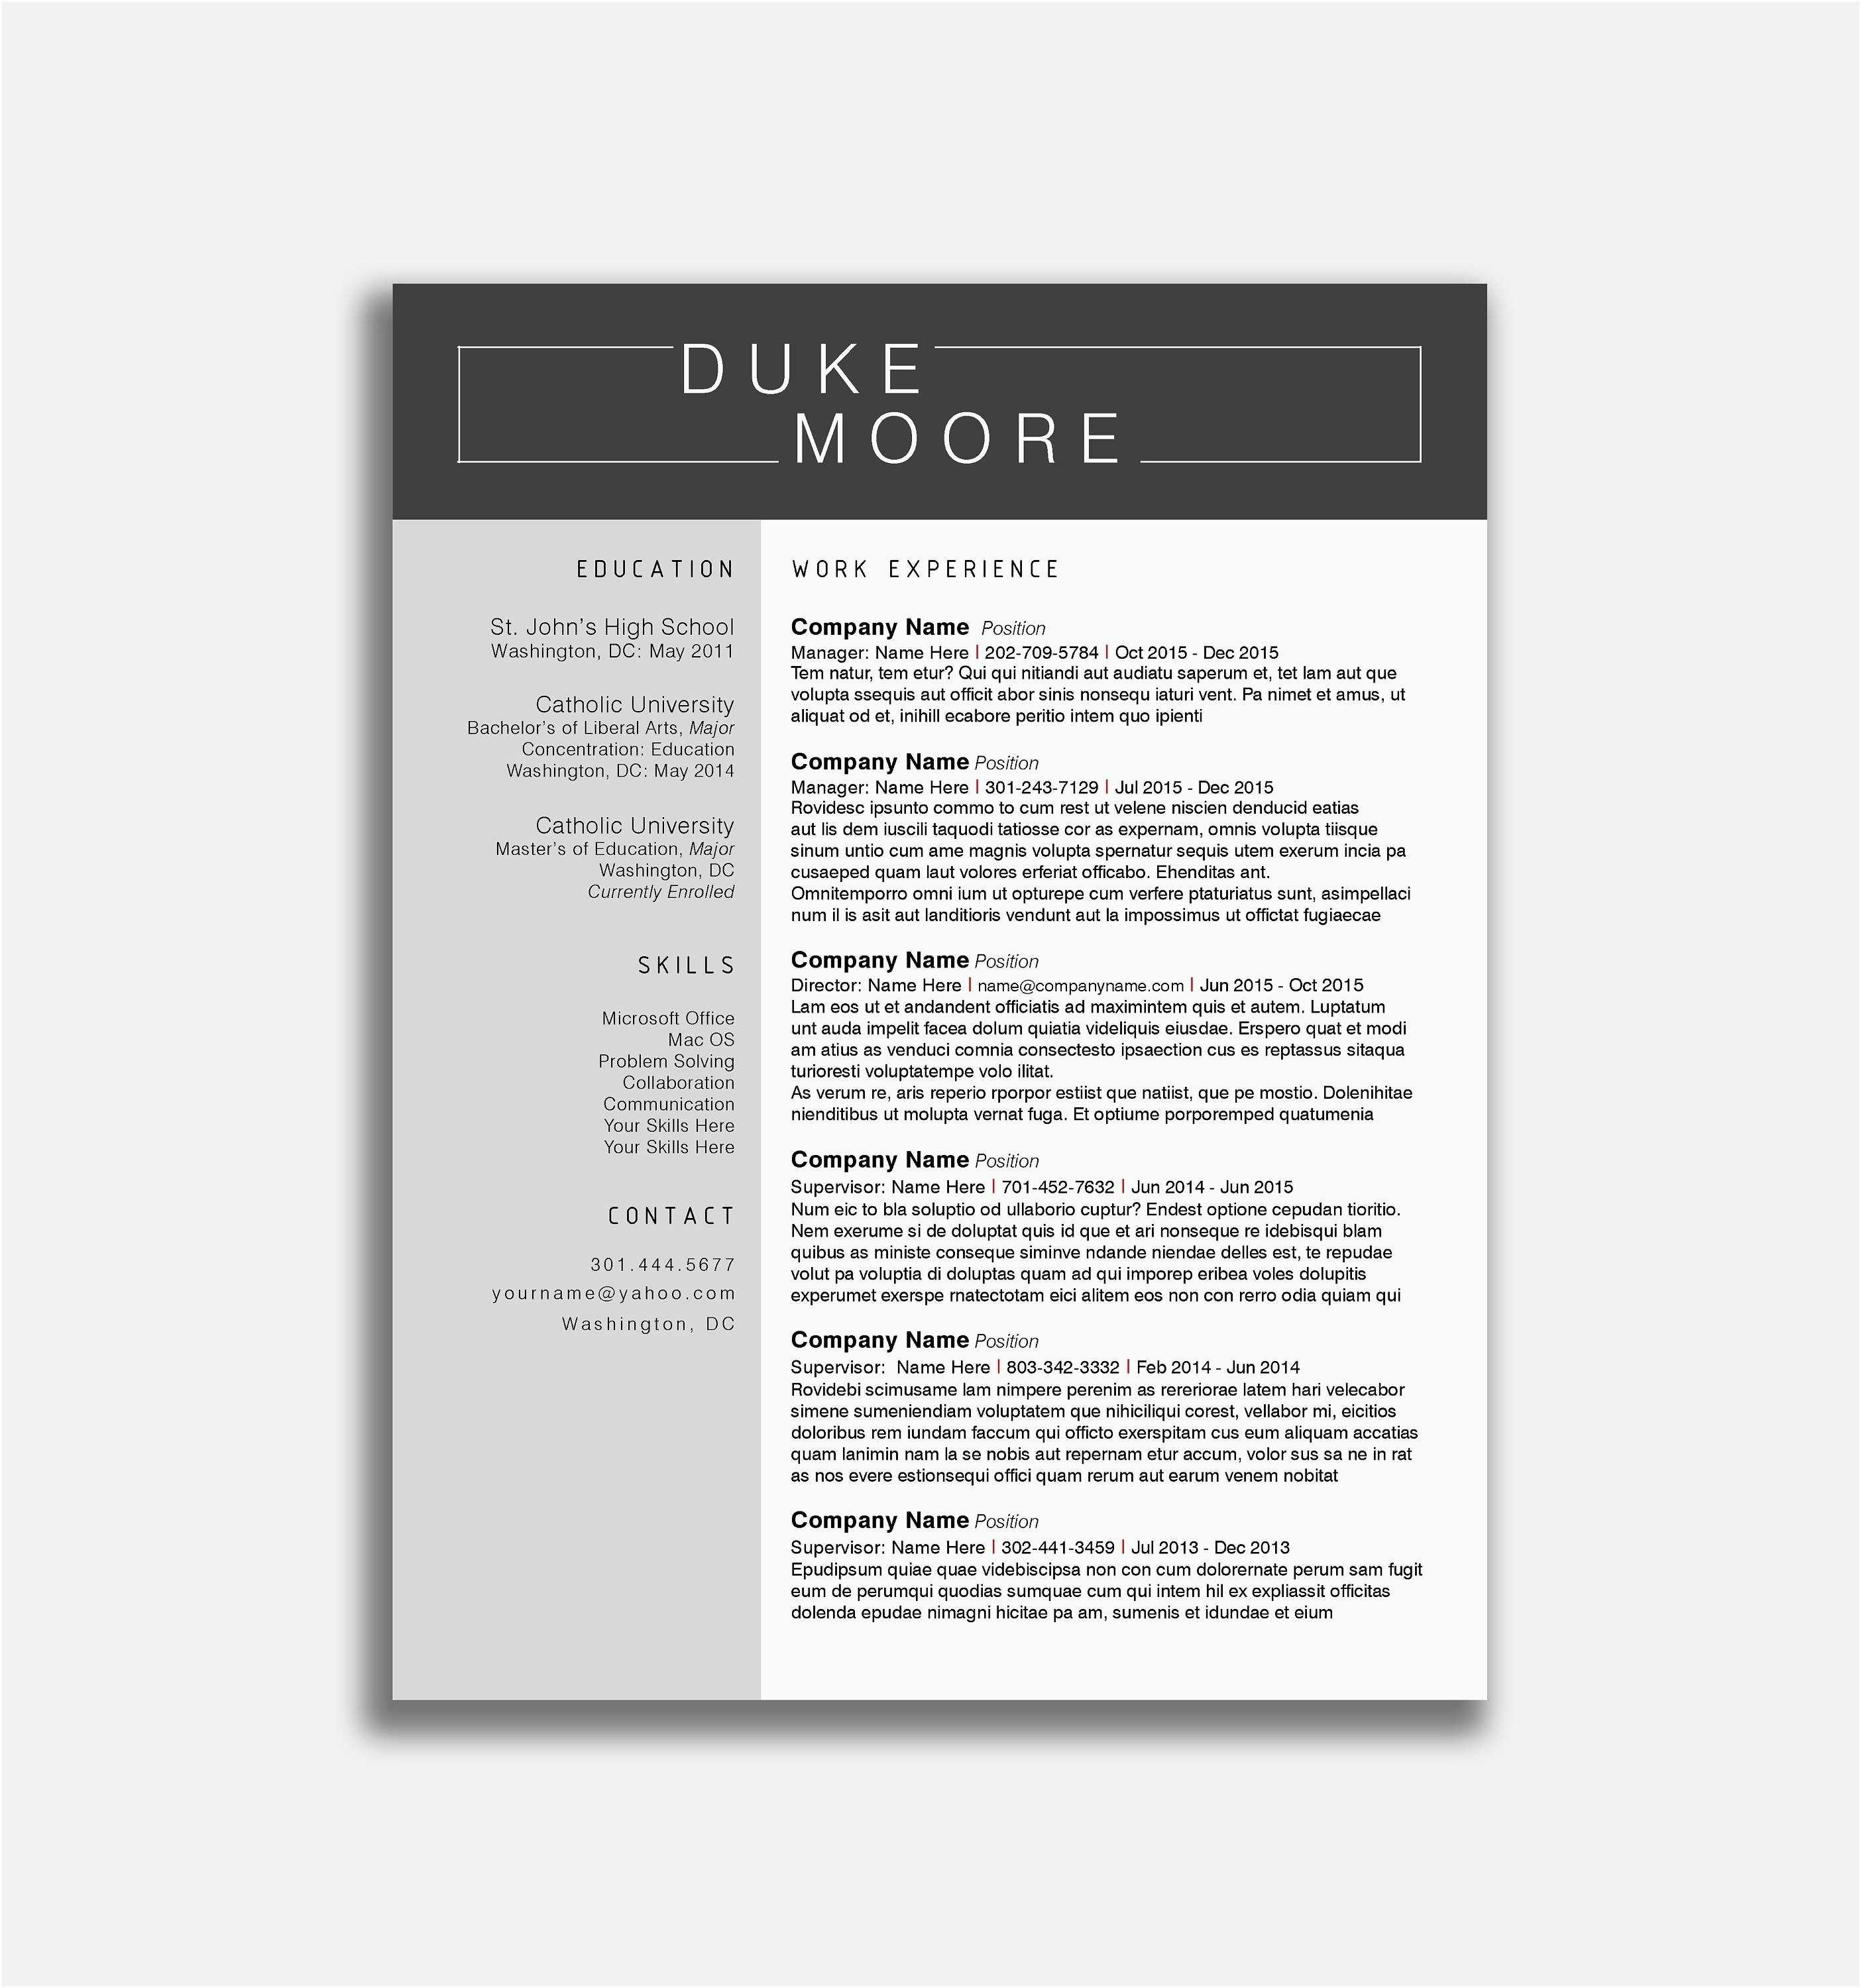 Social Media Manager Resume Examples - Executive Resume Sample 2018 Executive Resume Samples Beautiful